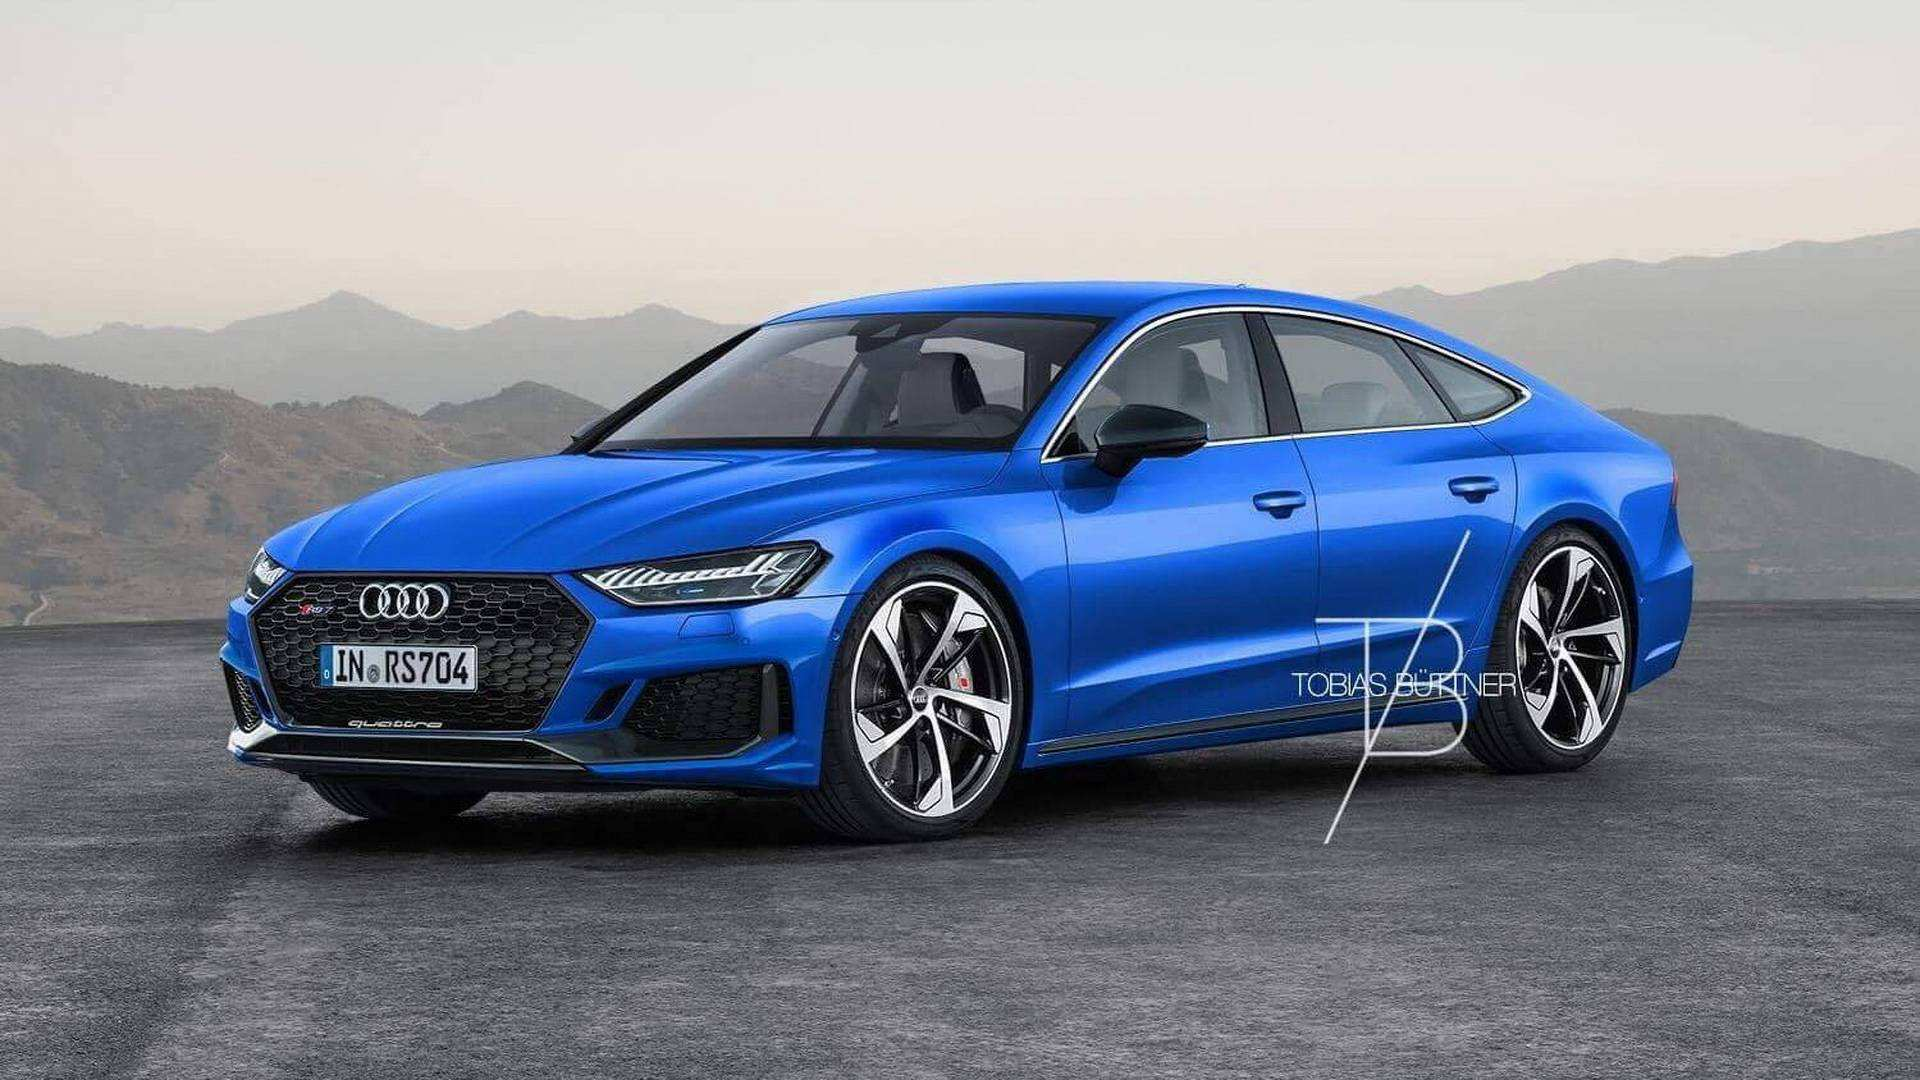 80 Concept of 2020 Audi Rs7 Price and Review for 2020 Audi Rs7